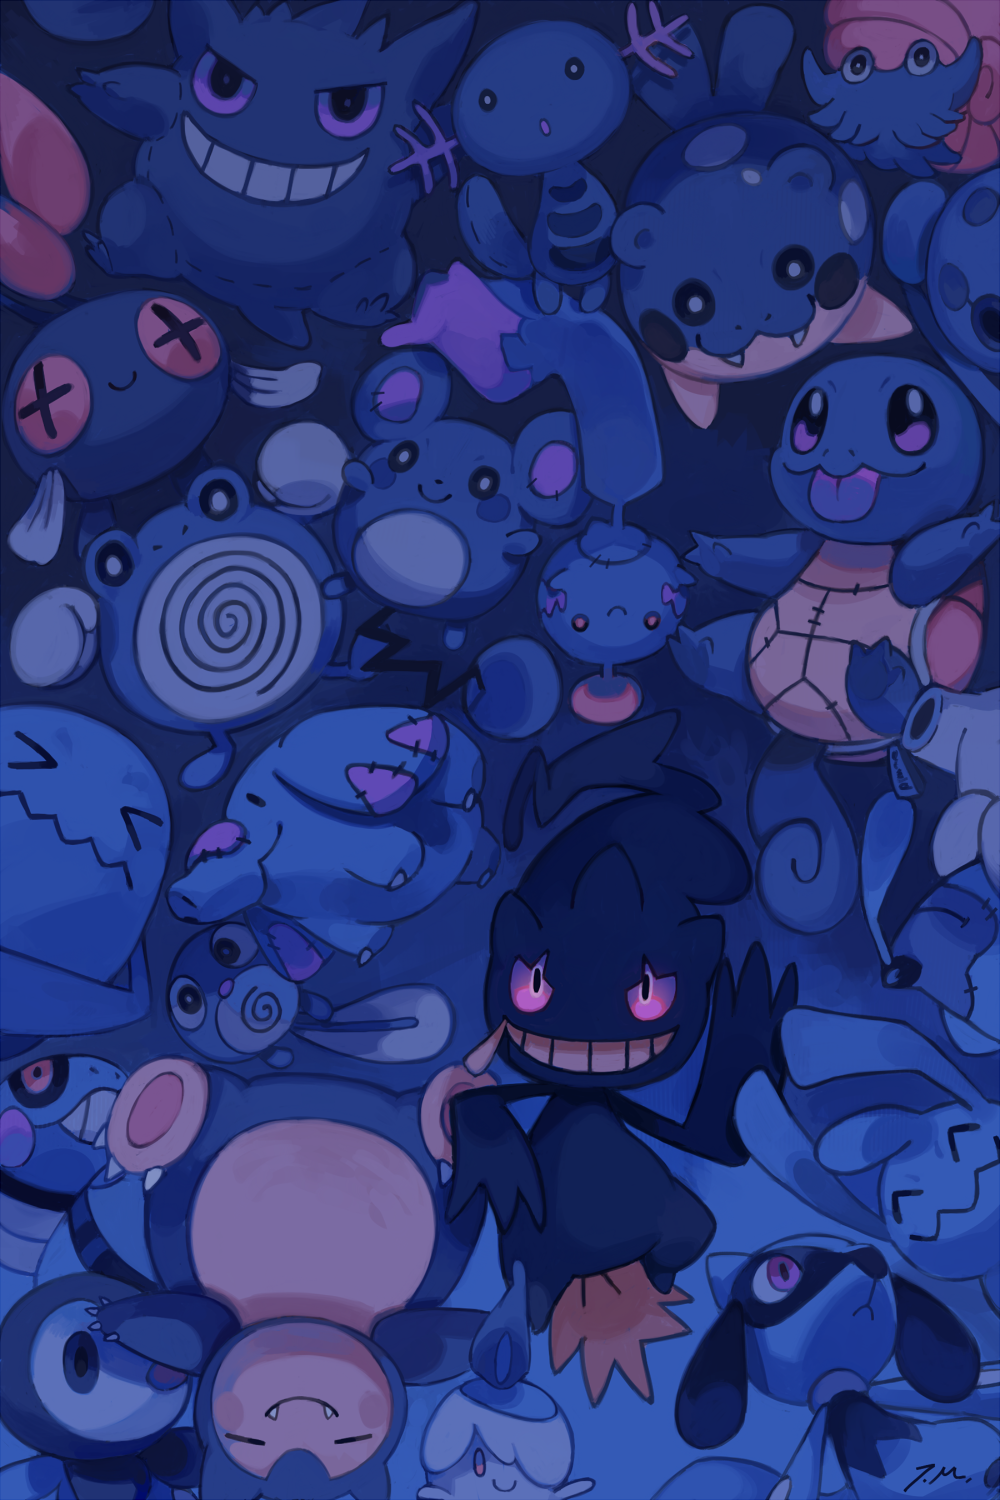 e621 ambiguous_gender azurill banette blue_theme bluekomadori body_zipper canine chimecho chinchou croagunk cubchoo doll feral gengar ghost group hi_res large_group legendary_pokémon litwick looking_at_viewer lying mammal mouth_zipper nintendo omanyte phanpy phione piplup pokémon poliwag poliwhirl red_eyes riolu smile snorlax spheal spirit squirtle video_games wobbuffet wooper wynaut zipper